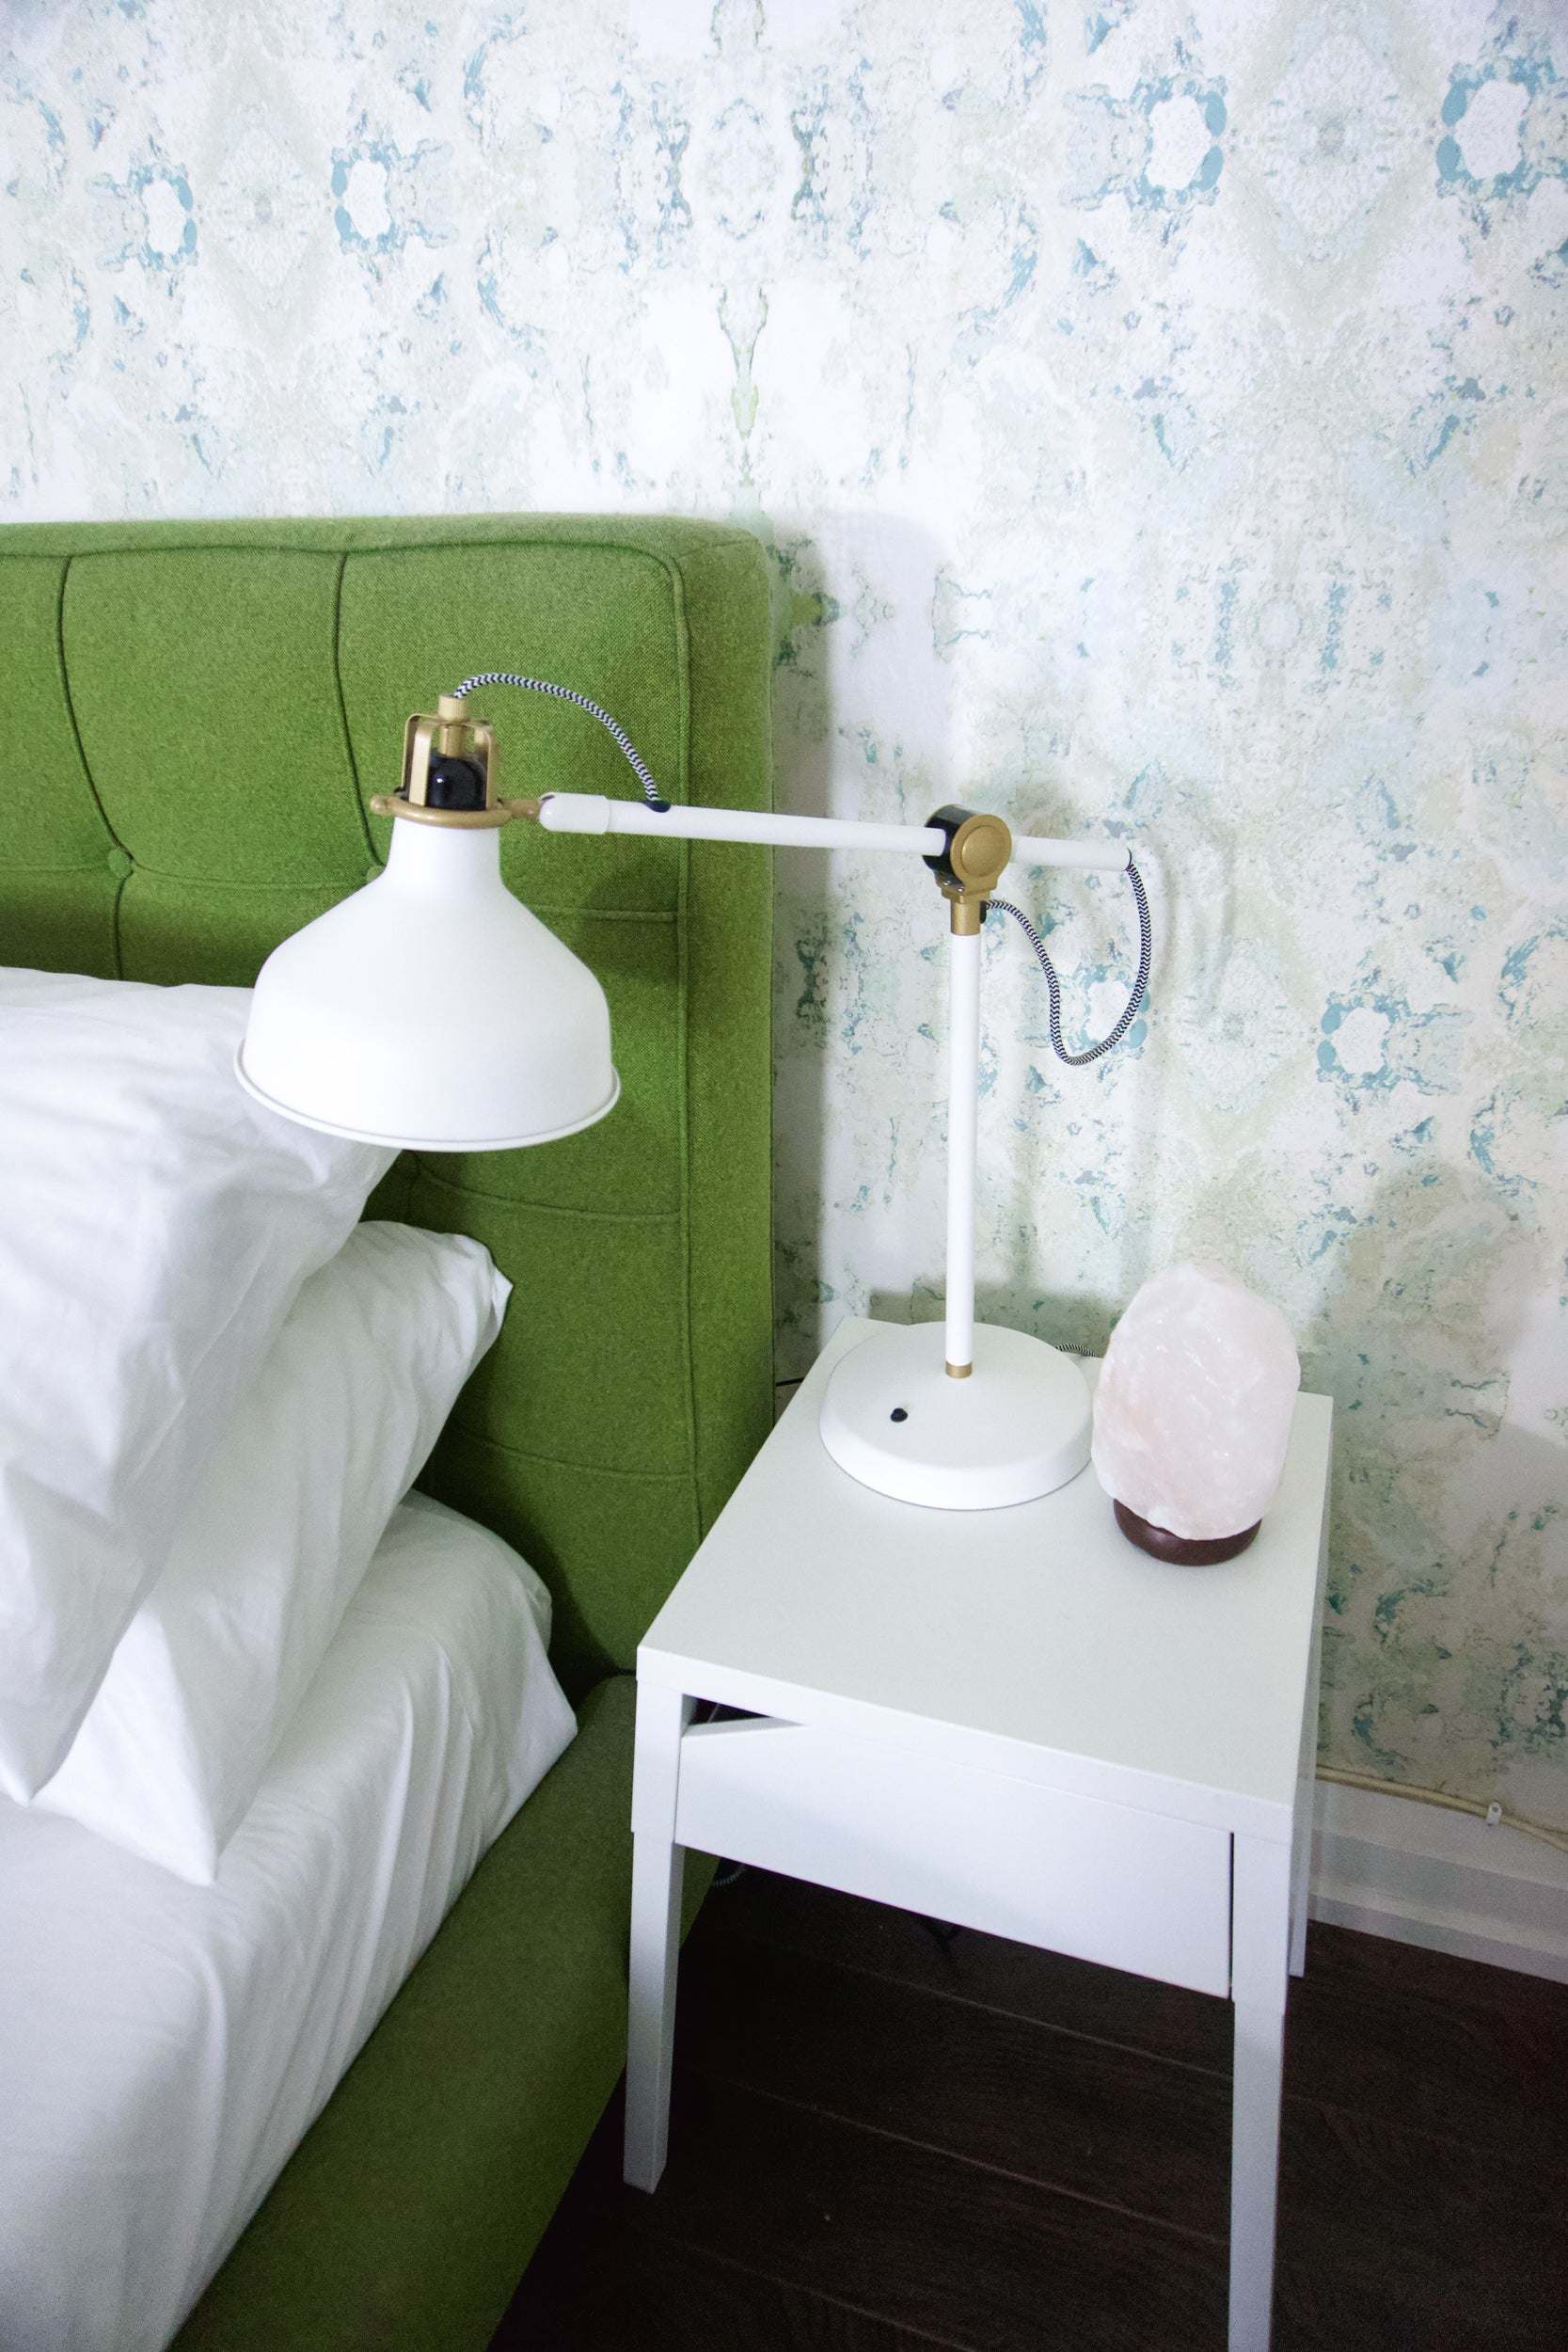 A beautiful bedside table and white lamp adjacent to a salt lamp